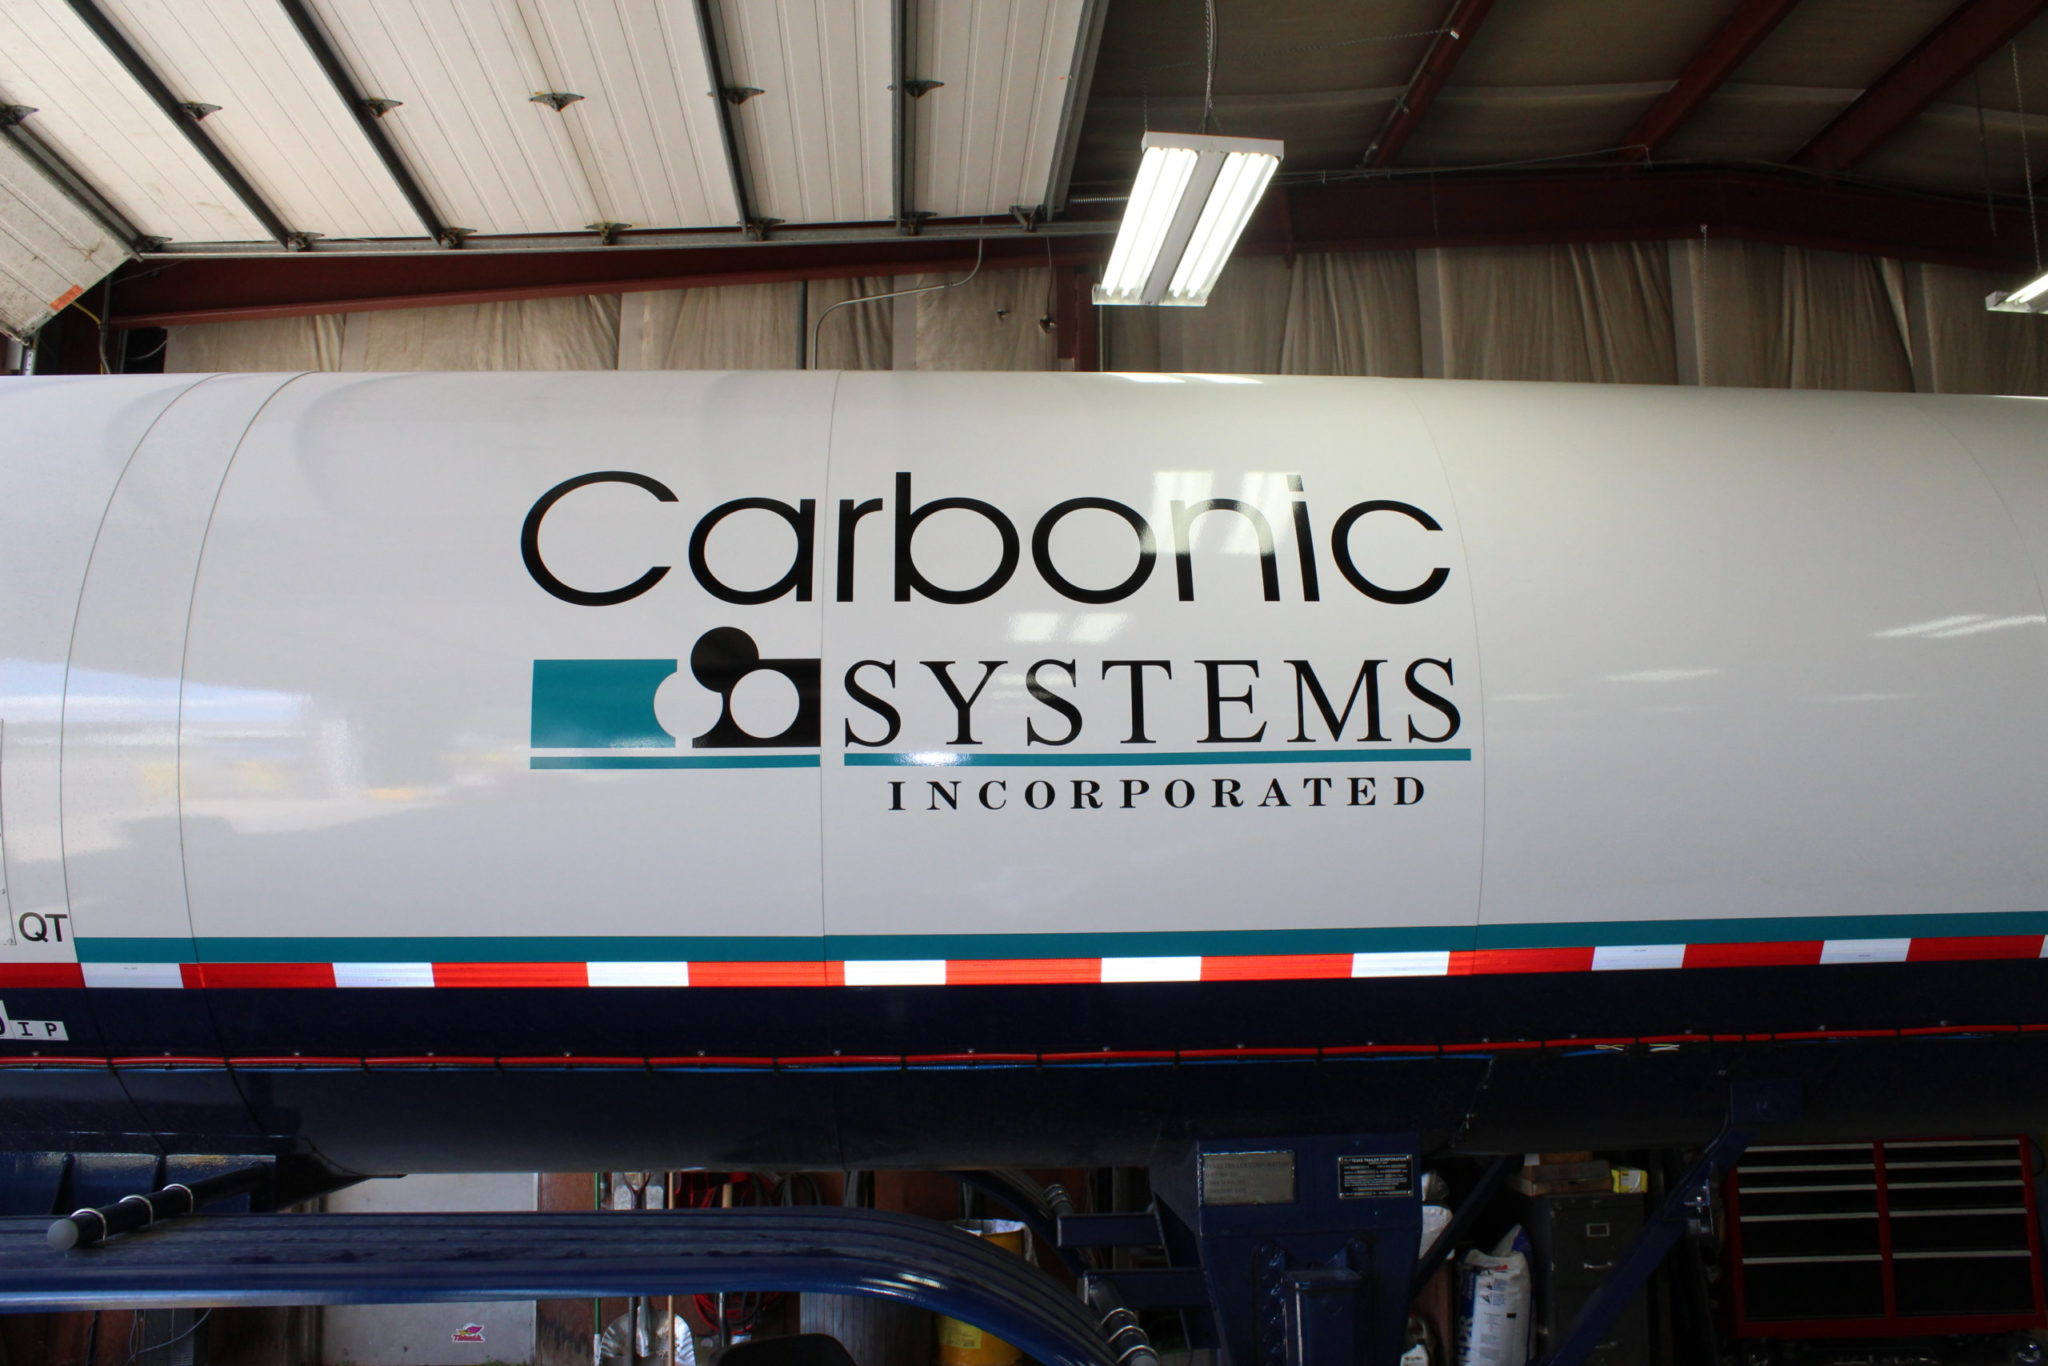 carbonic systems, tanker, wrap, vehicle 8